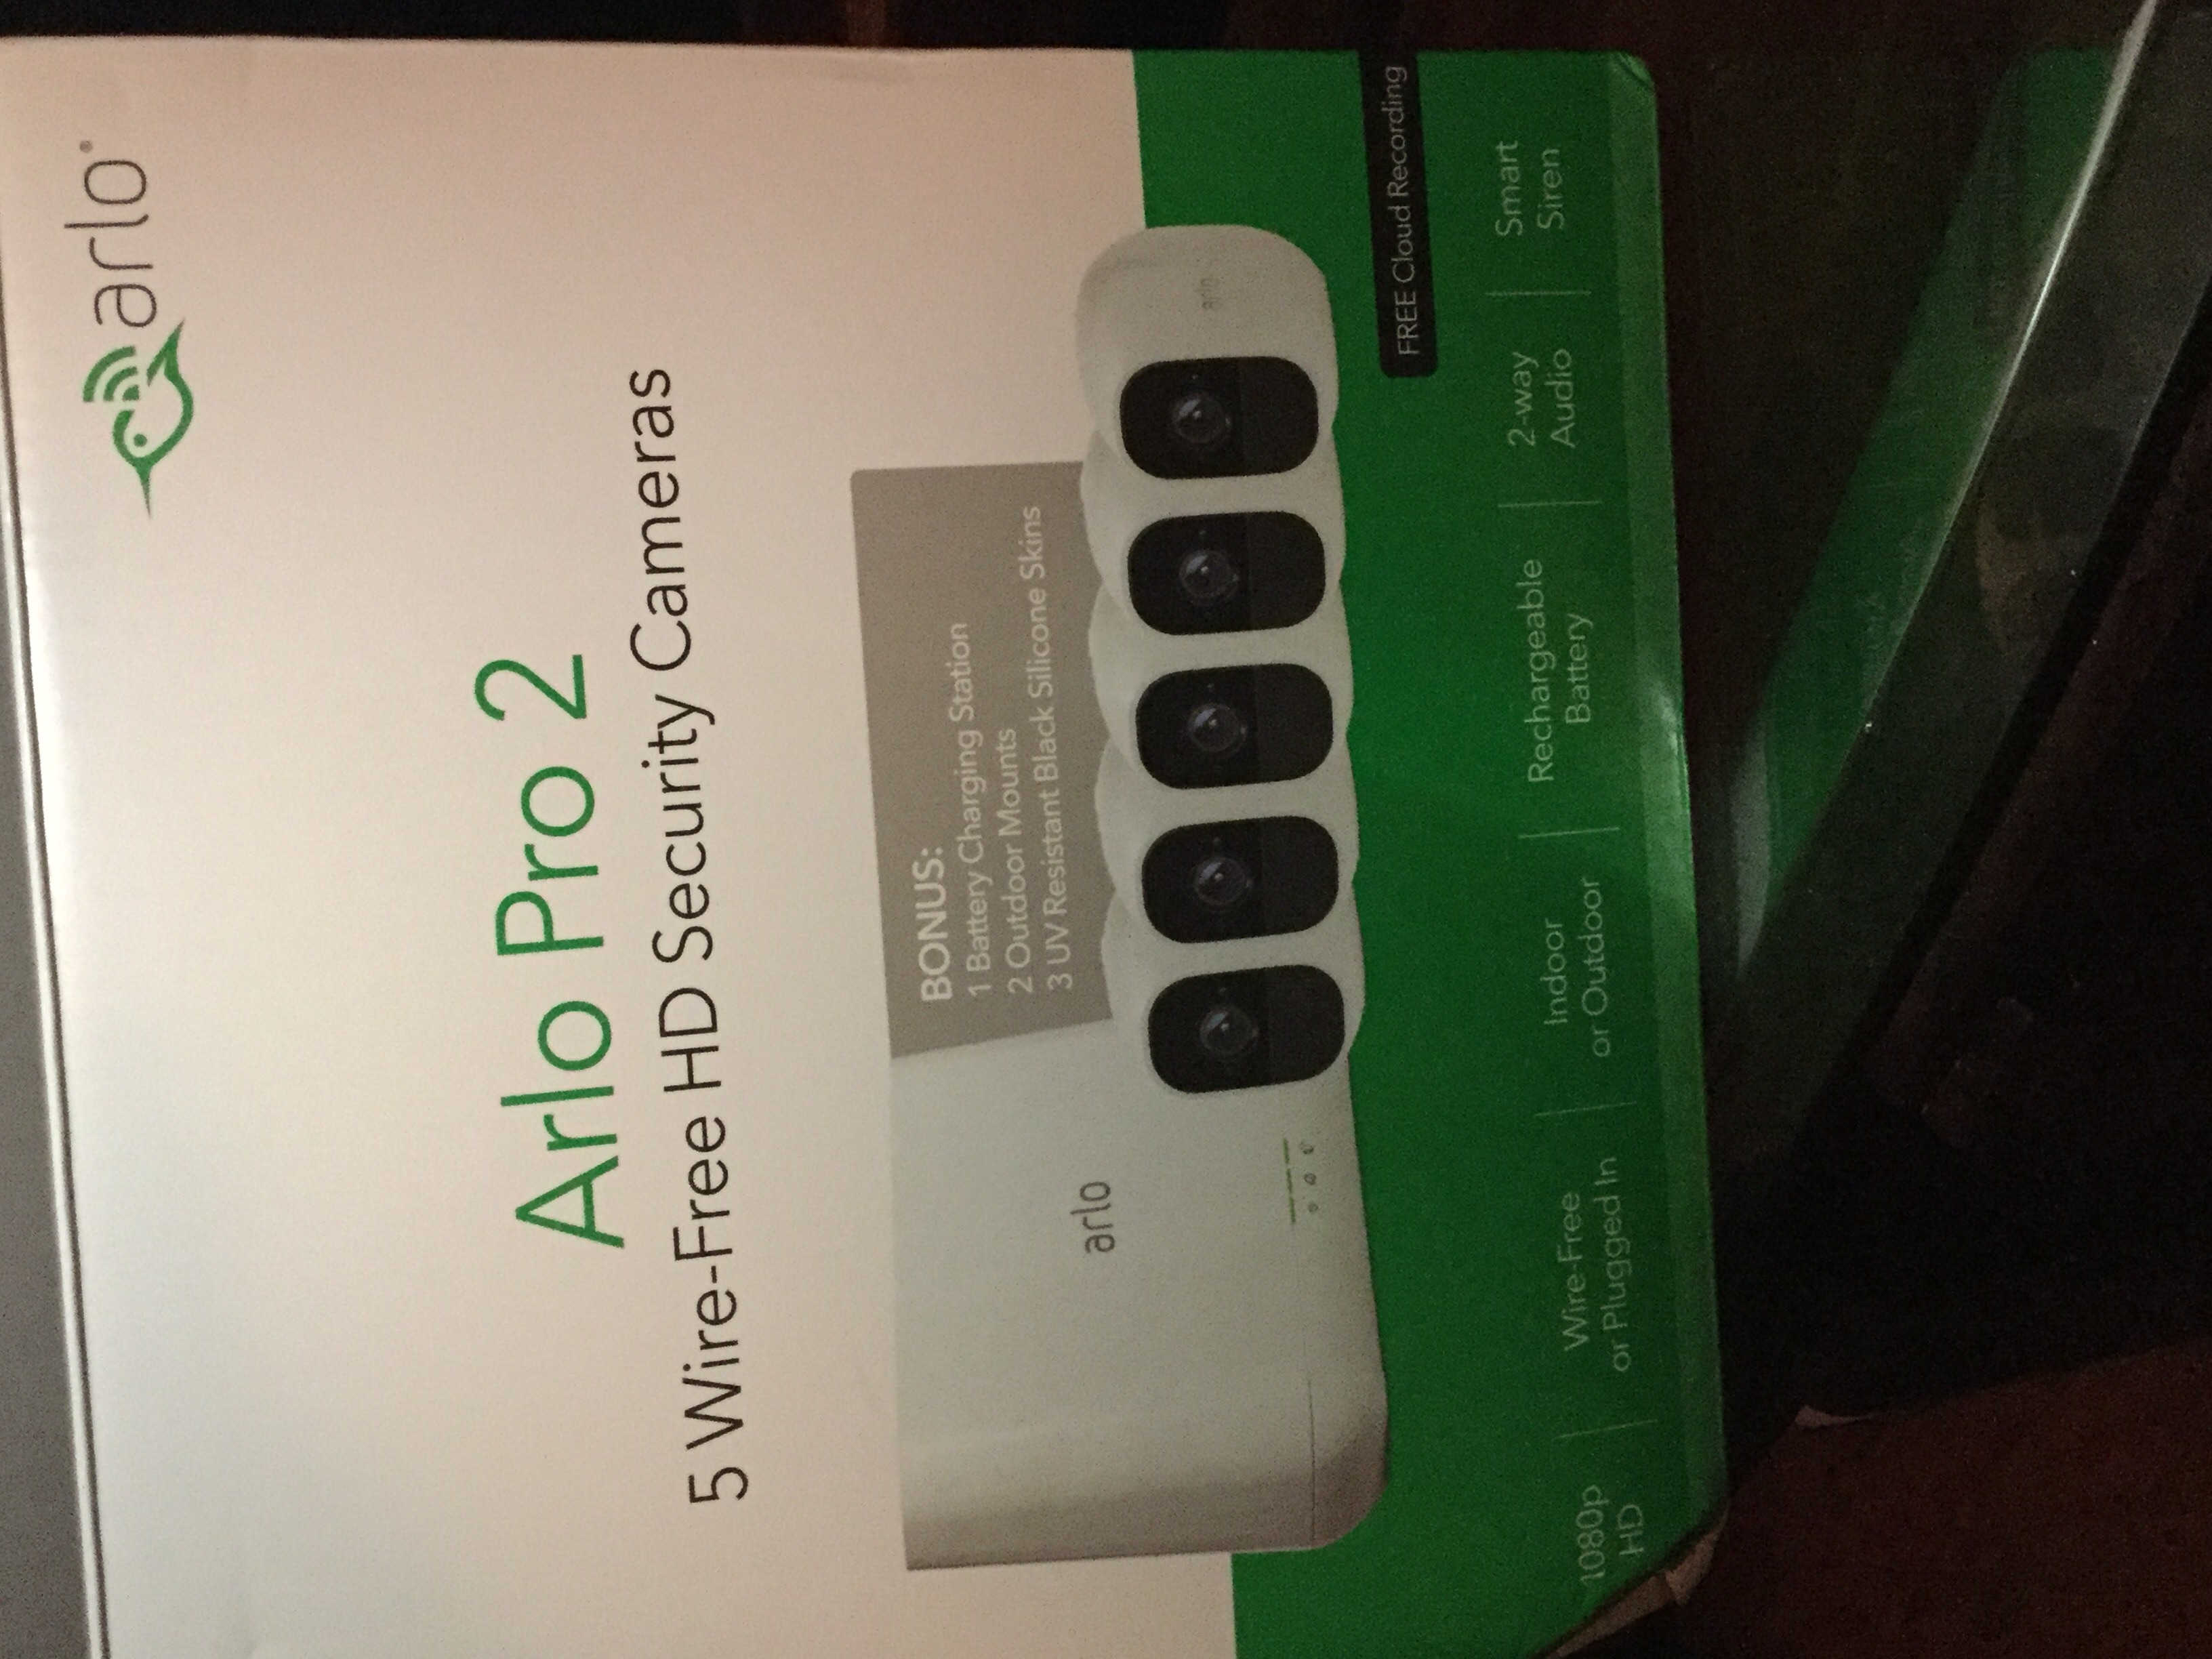 Solved: Re: ARLO PRO 2 battery doesn't charge in Arlo char